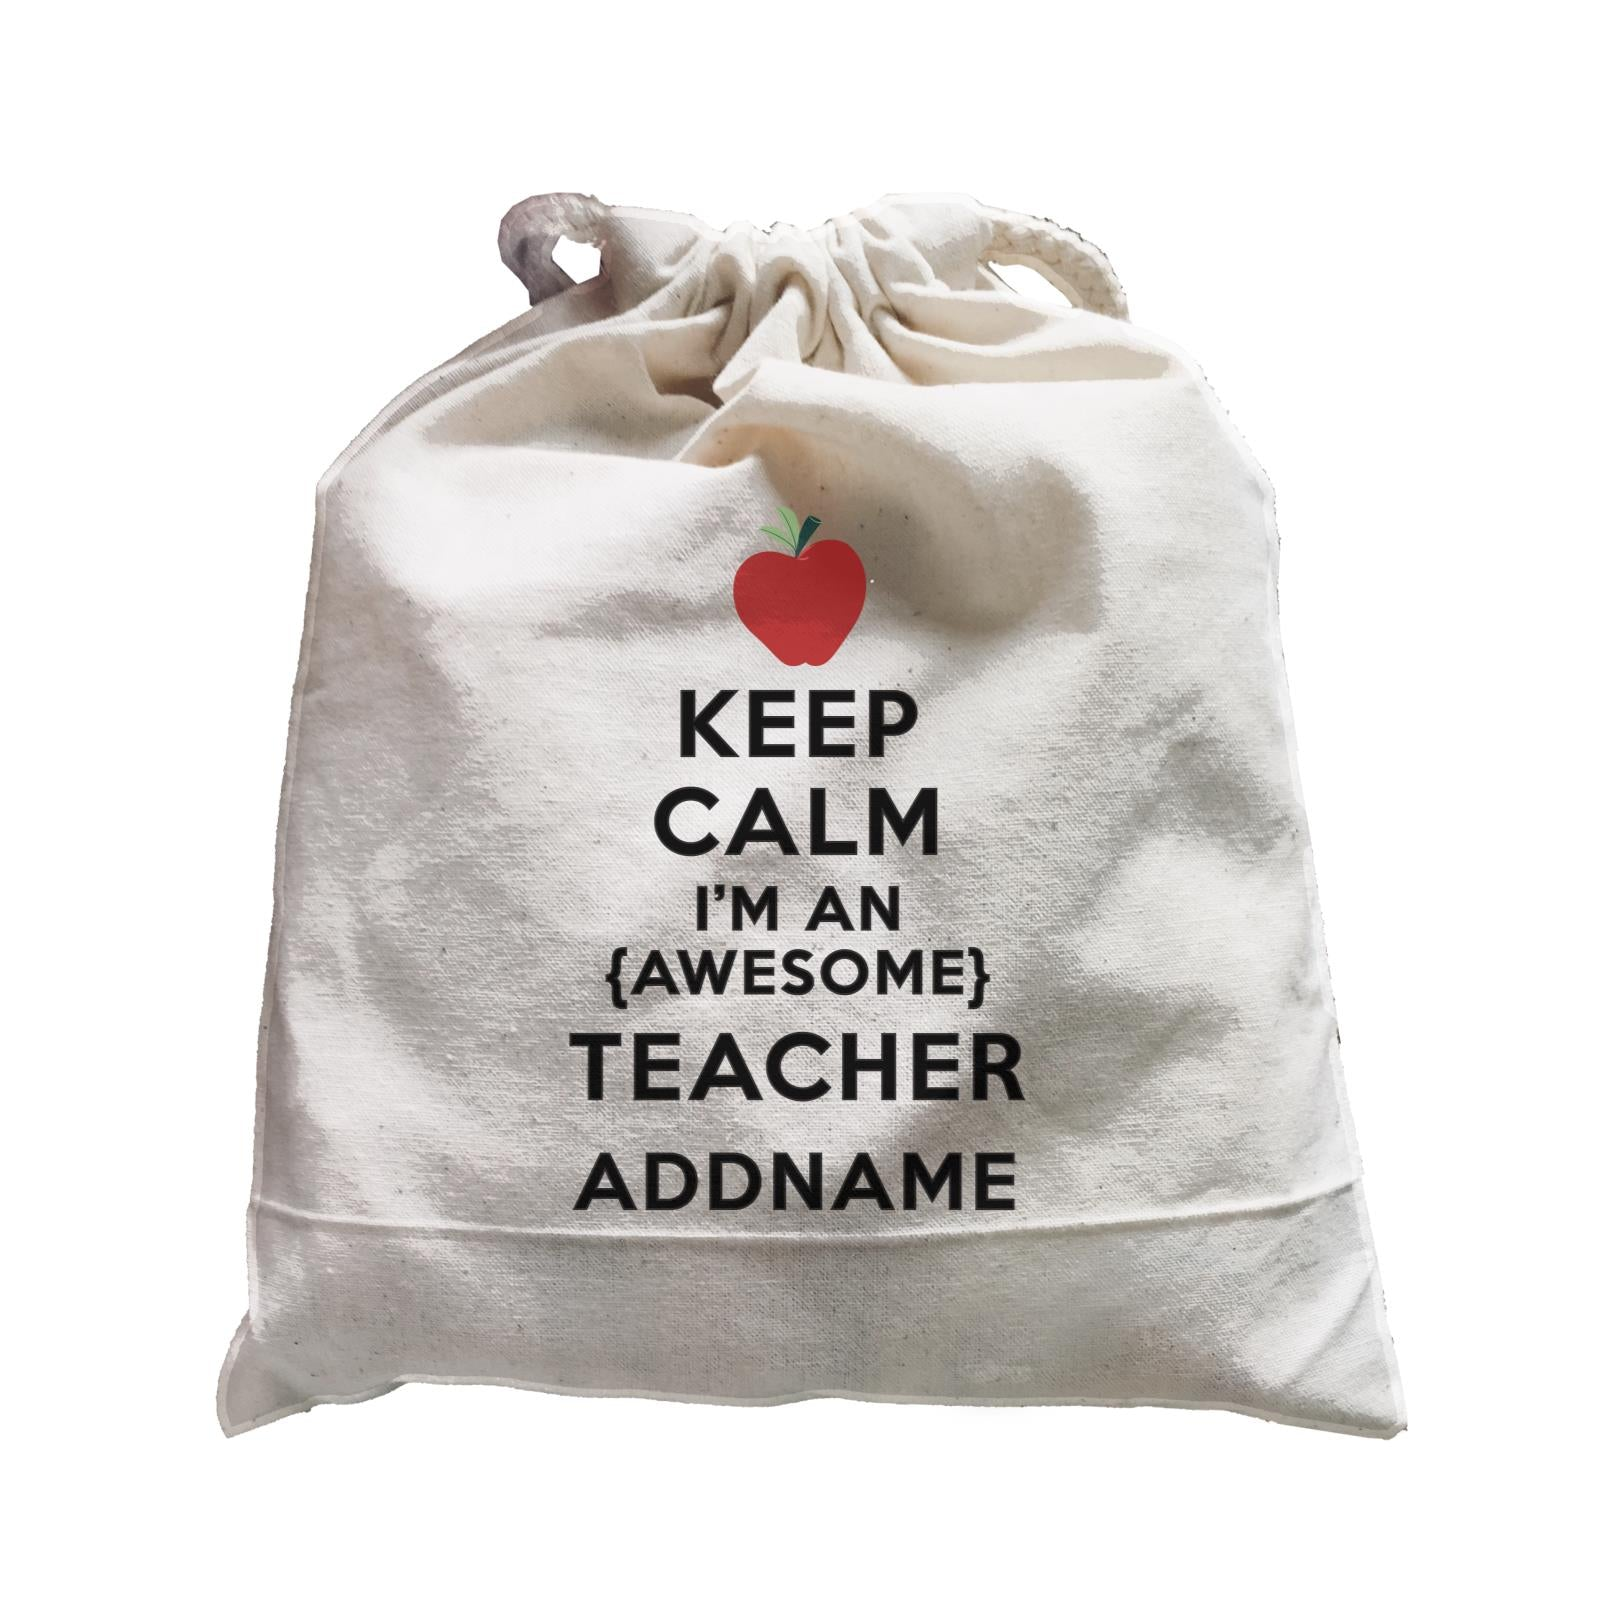 Teacher Quotes Keep Calm I'm An Awesome Teacher Addname Satchel